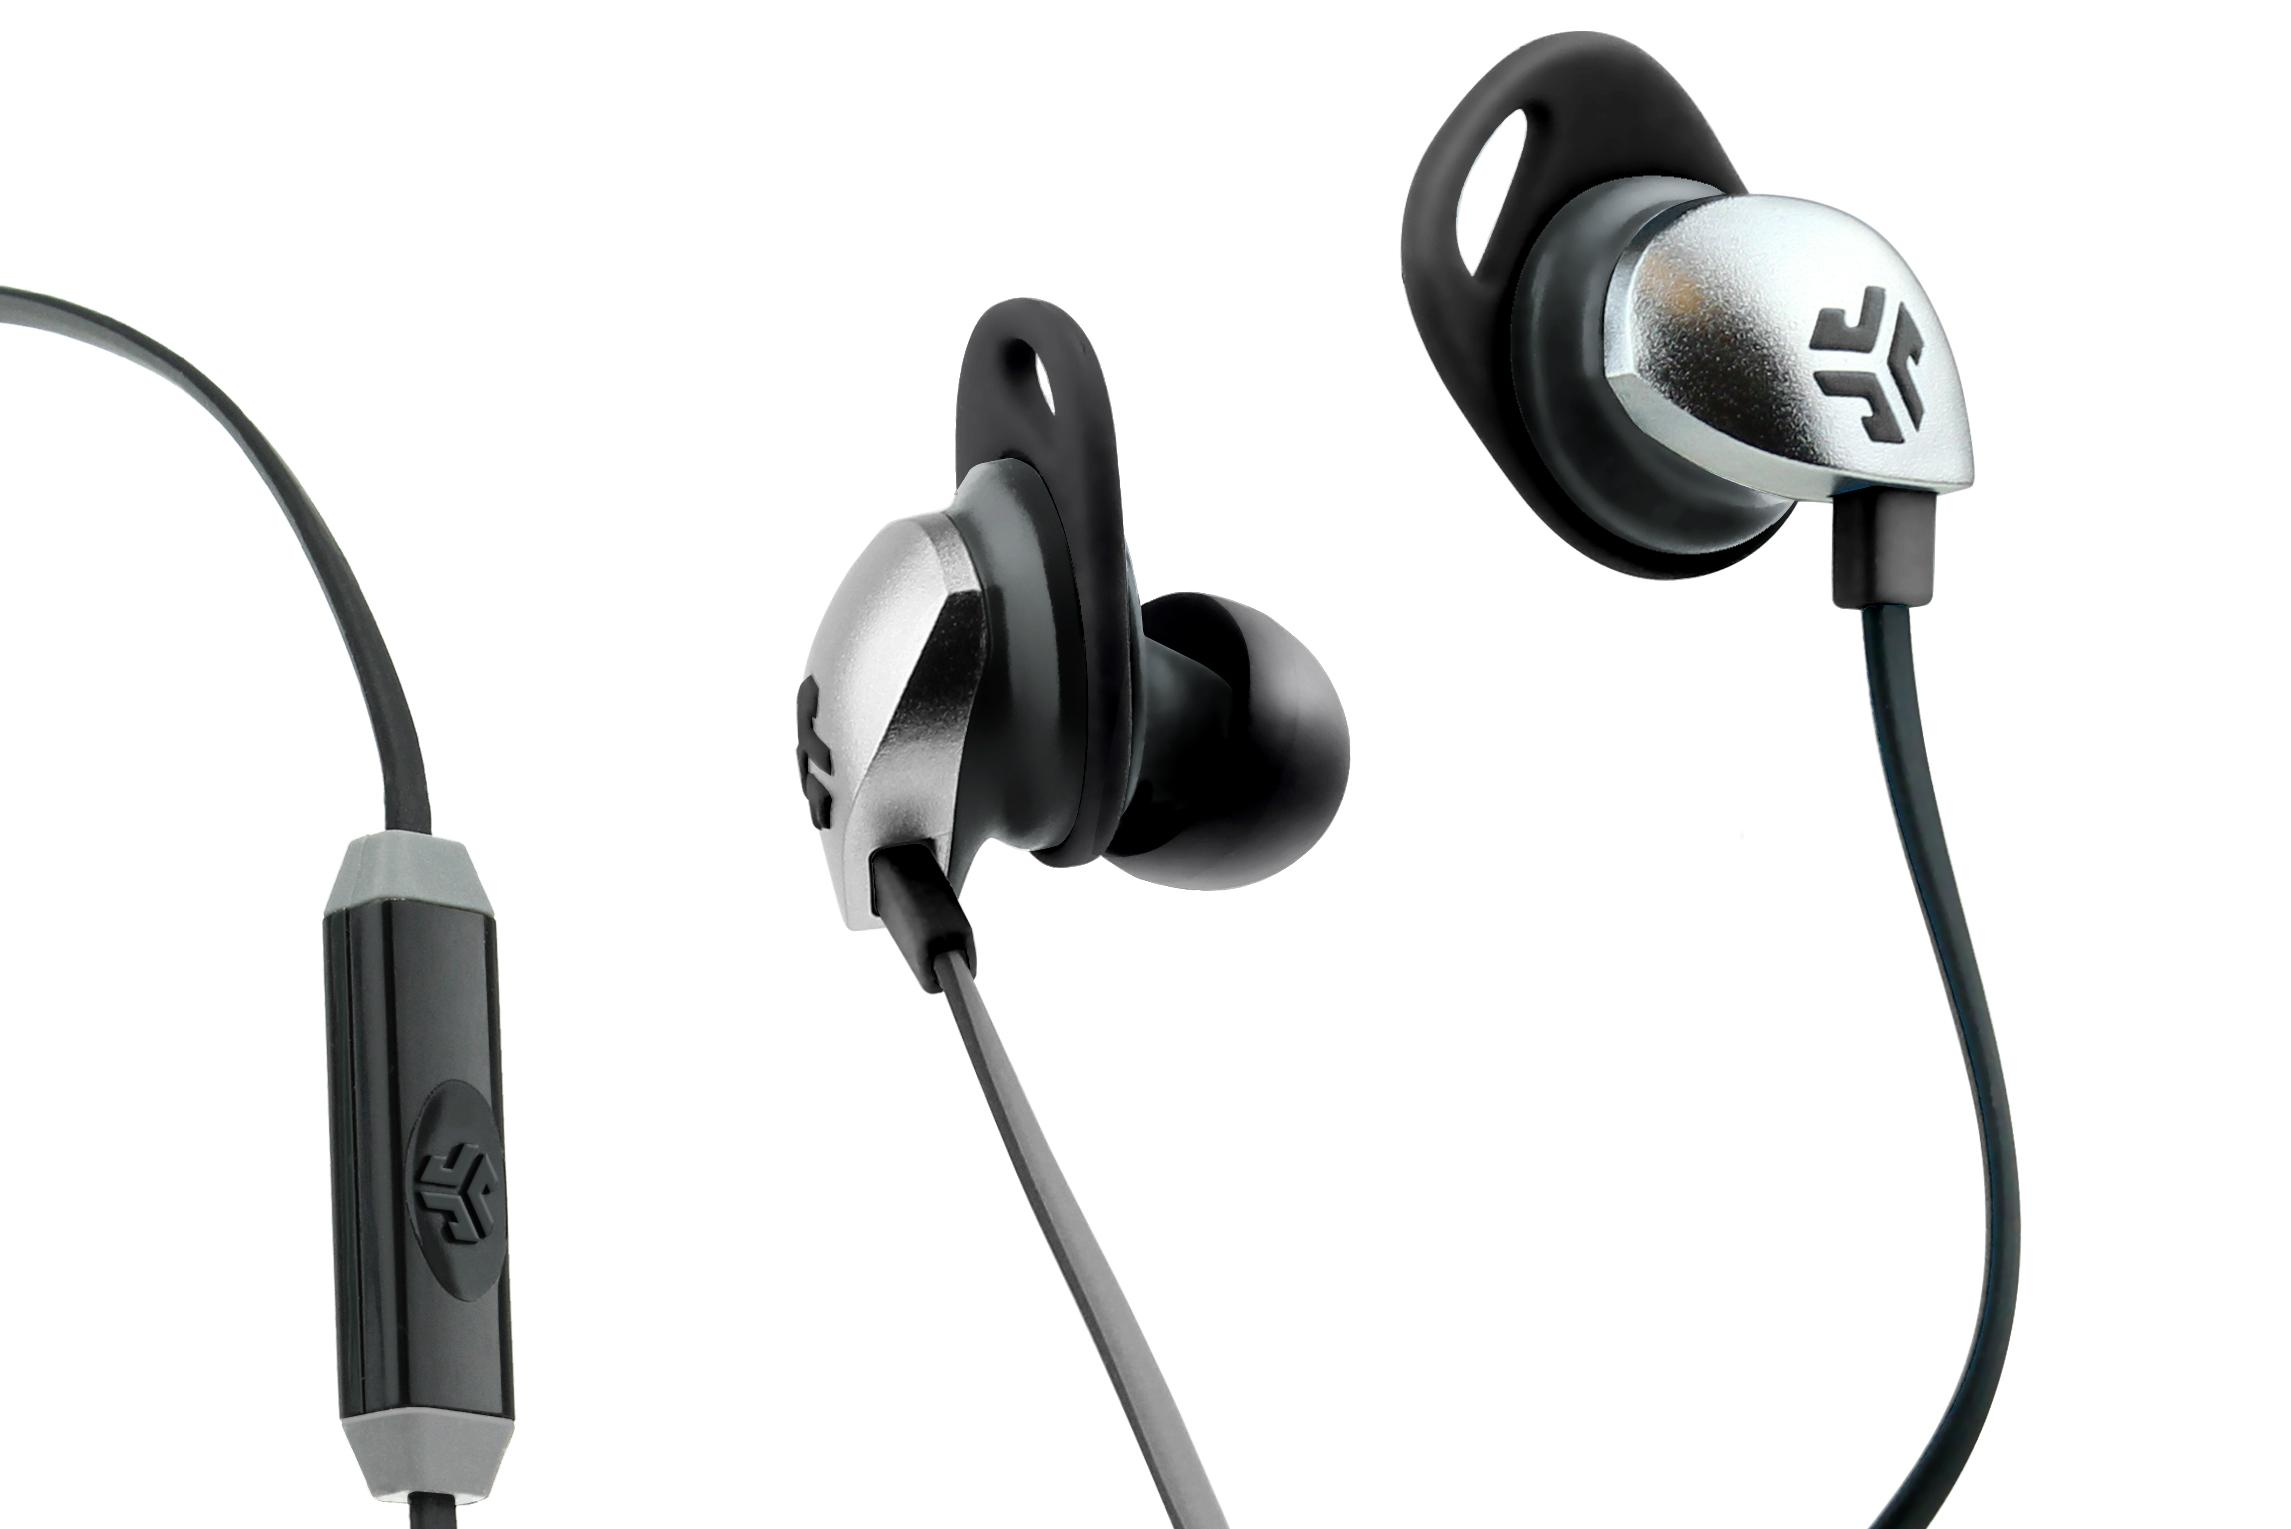 jlab 39 s epic in ear headphones bring epic bass avoid epic. Black Bedroom Furniture Sets. Home Design Ideas